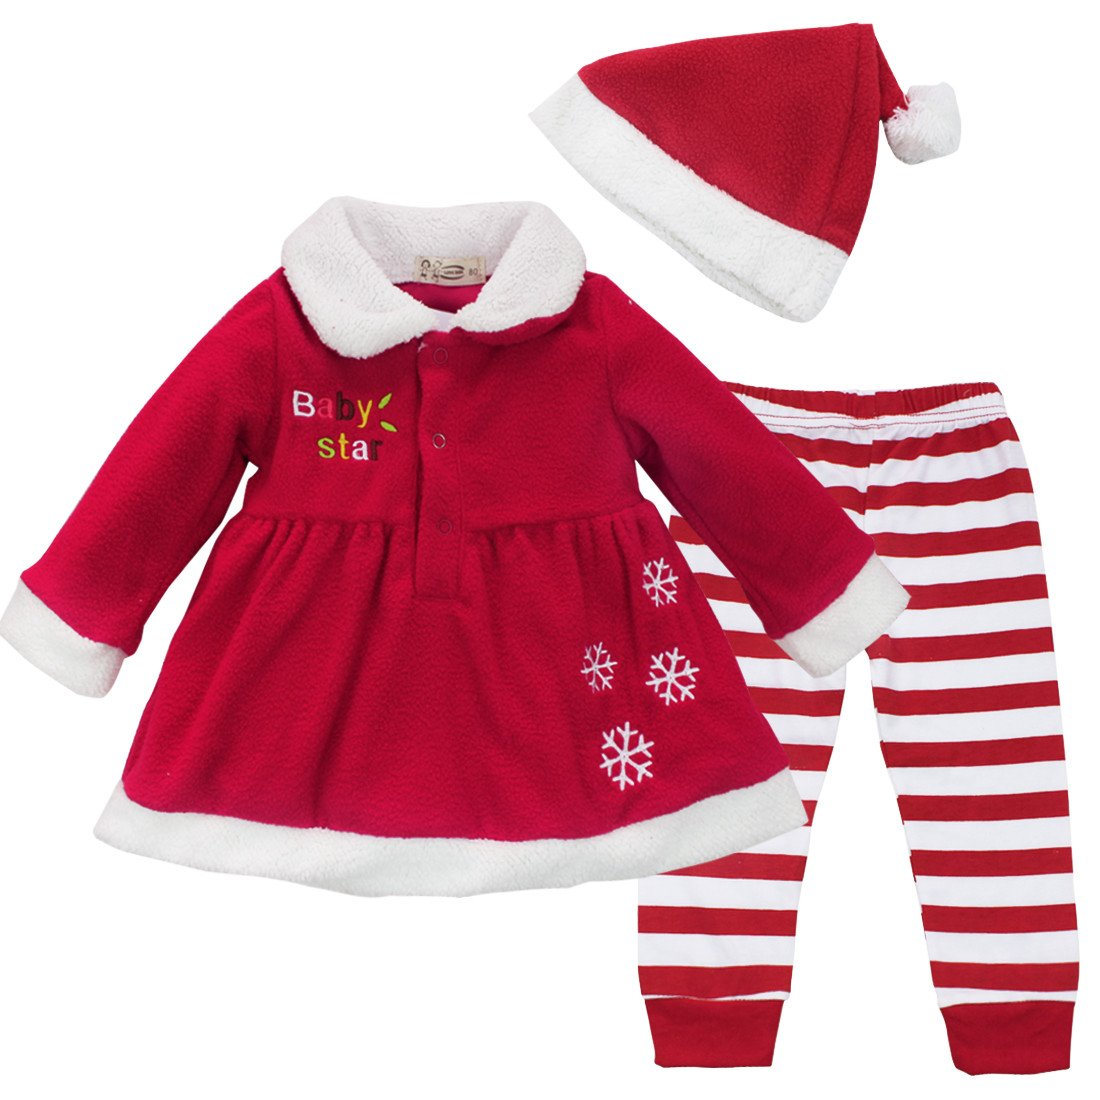 Freebily Baby Girls Long Sleeve Fleece Christmas Santa Costume Party Outfits Fancy Dress Top with Pants Hat Set